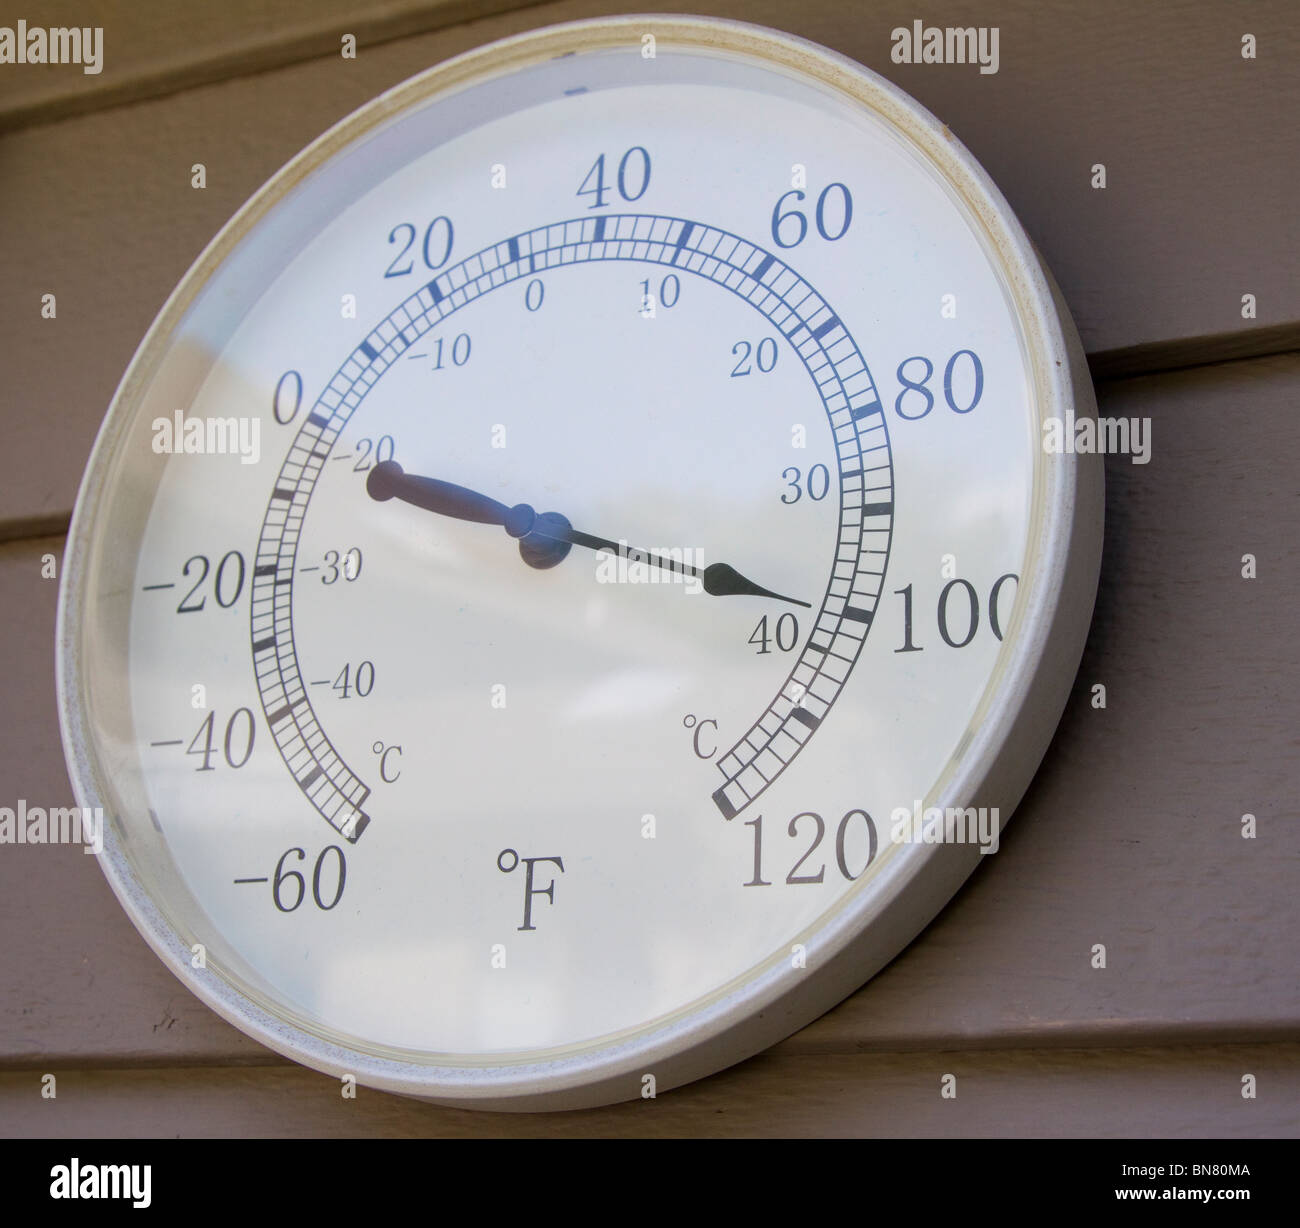 Outdoor Thermometer Showing 100 Degree Fahrenheit